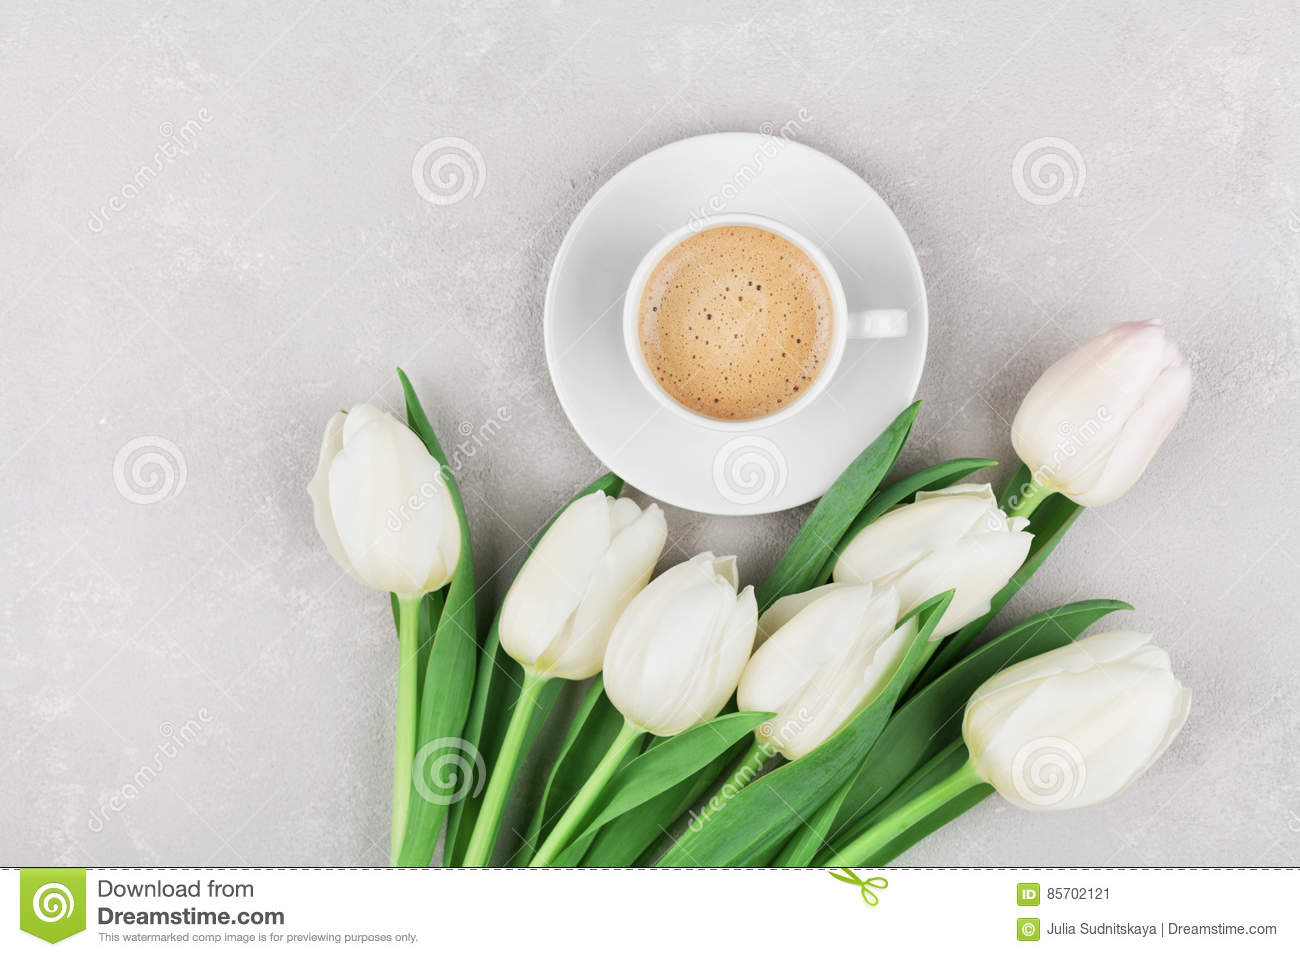 Coffee Mug With Spring Flowers For Good Morning On Gray Stone Table